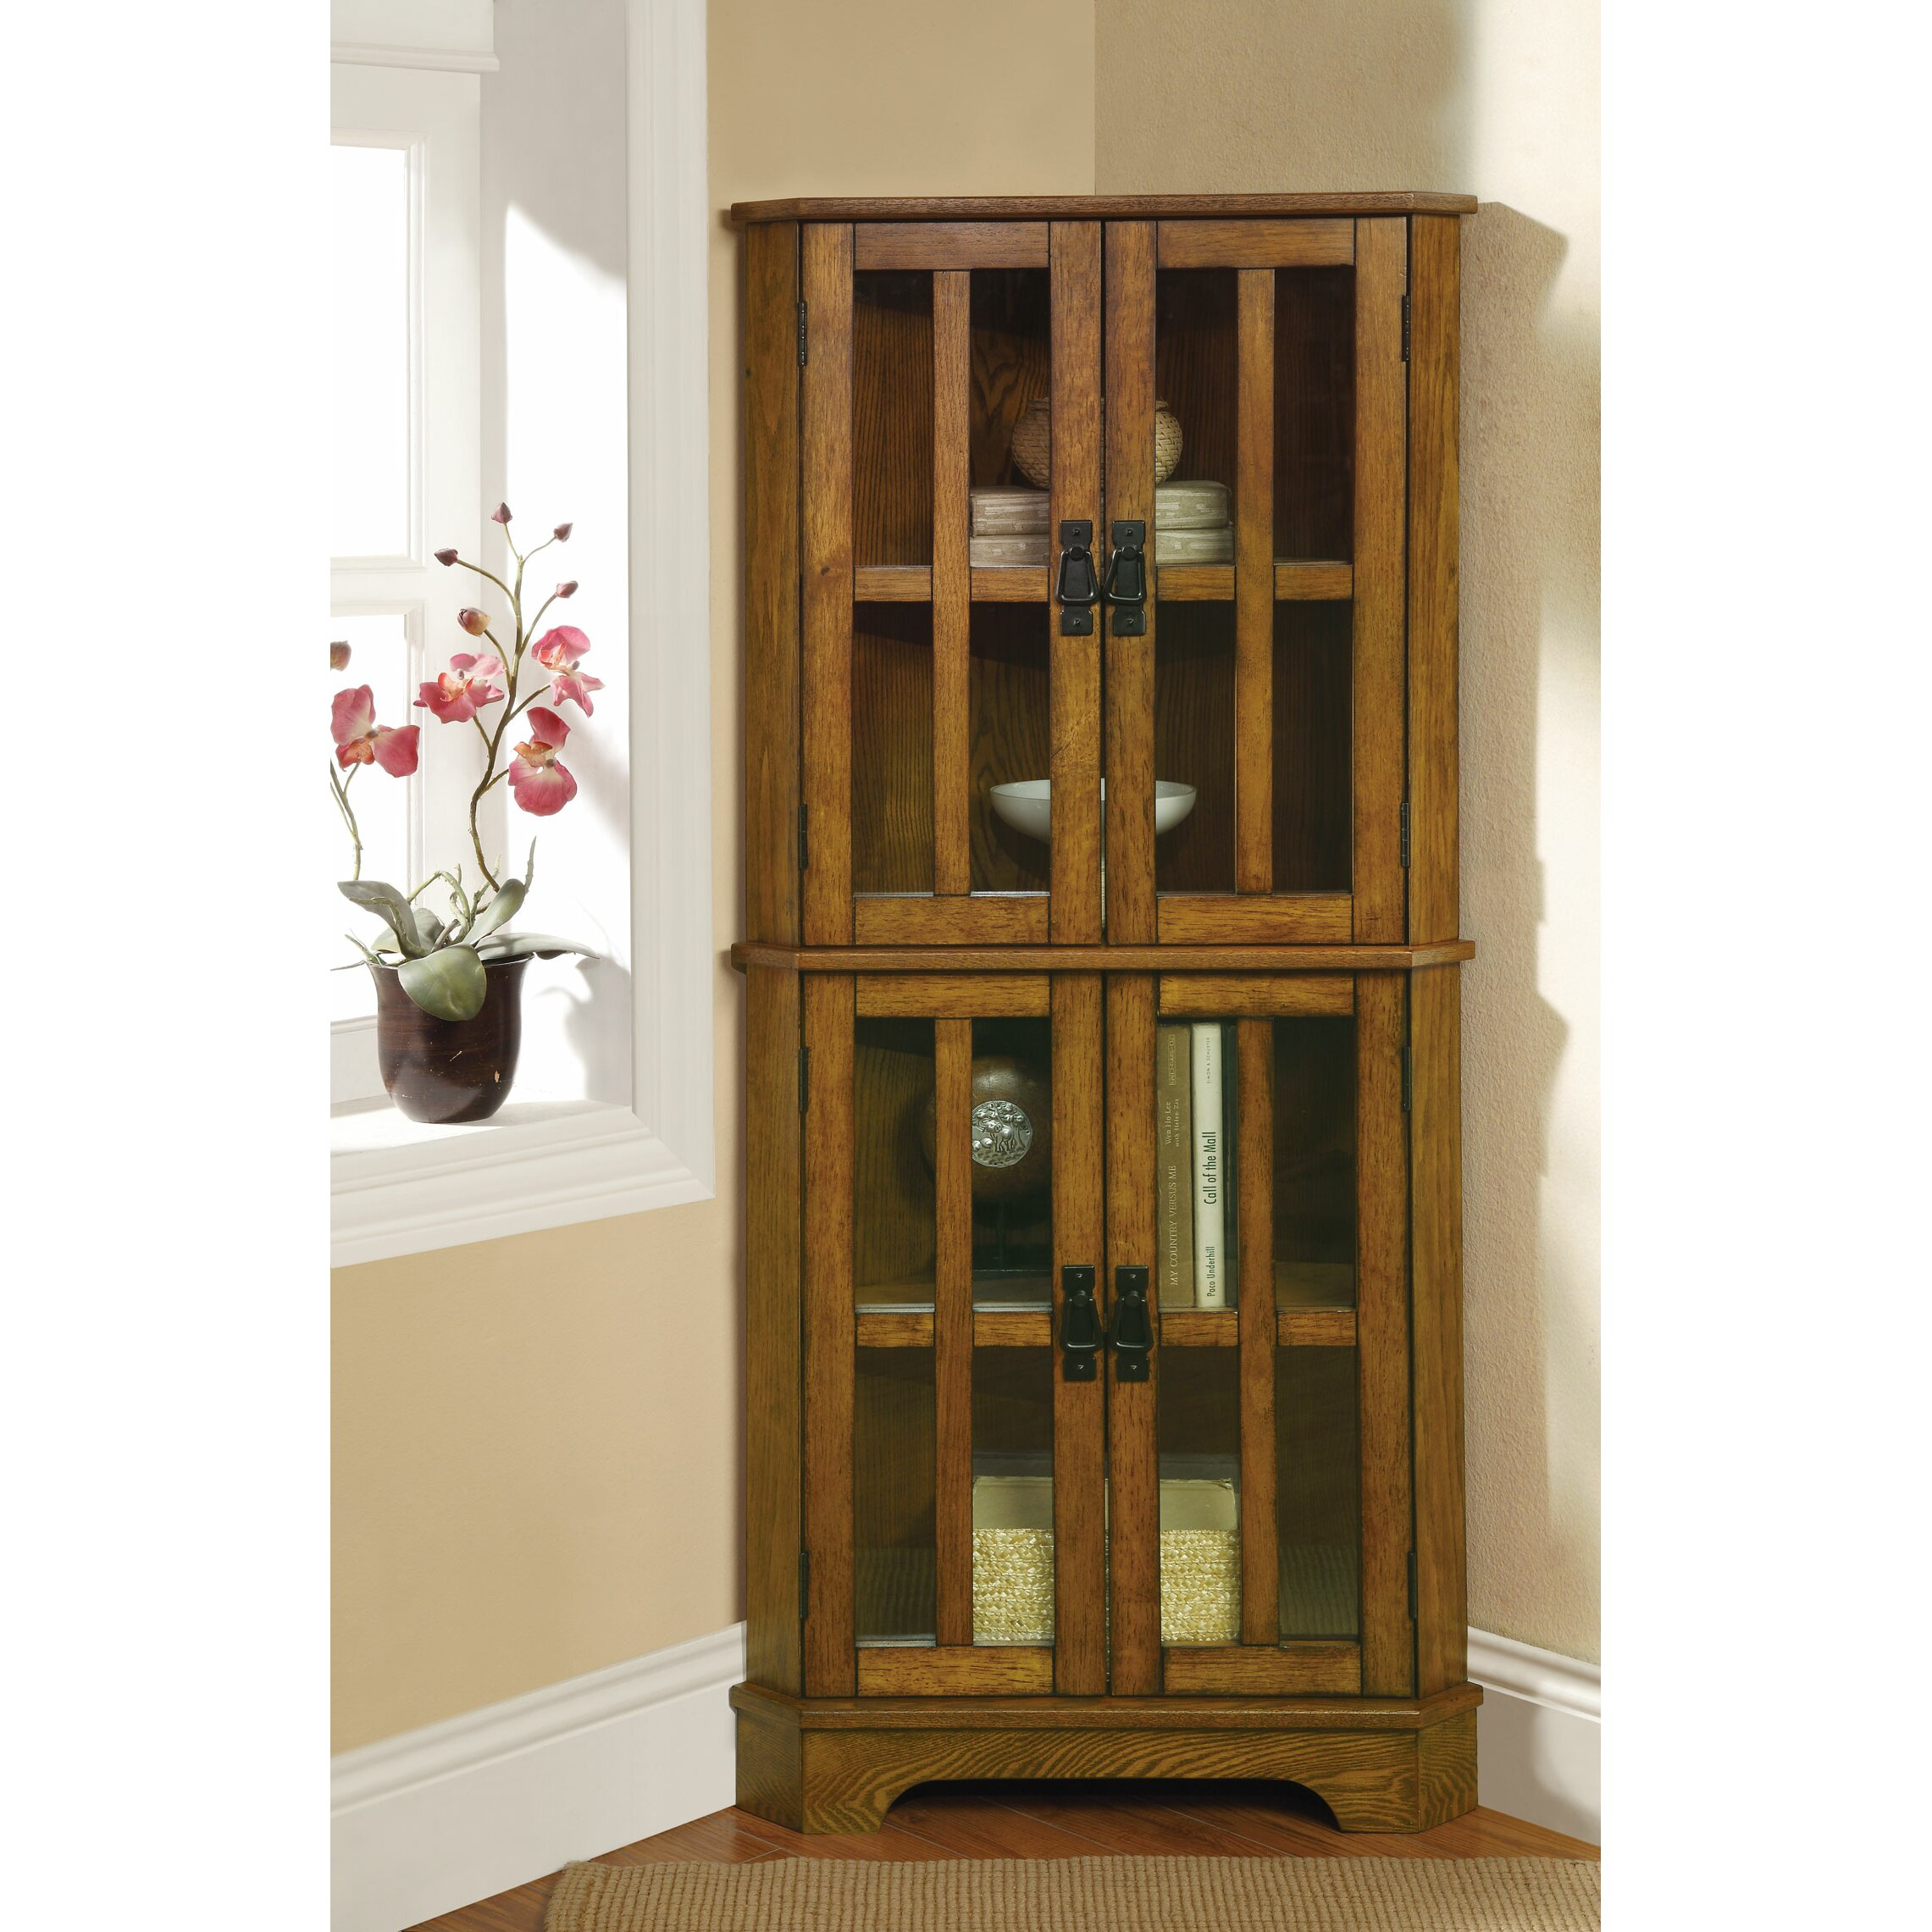 Wildon home corner curio cabinet reviews wayfair for Corner cabinet